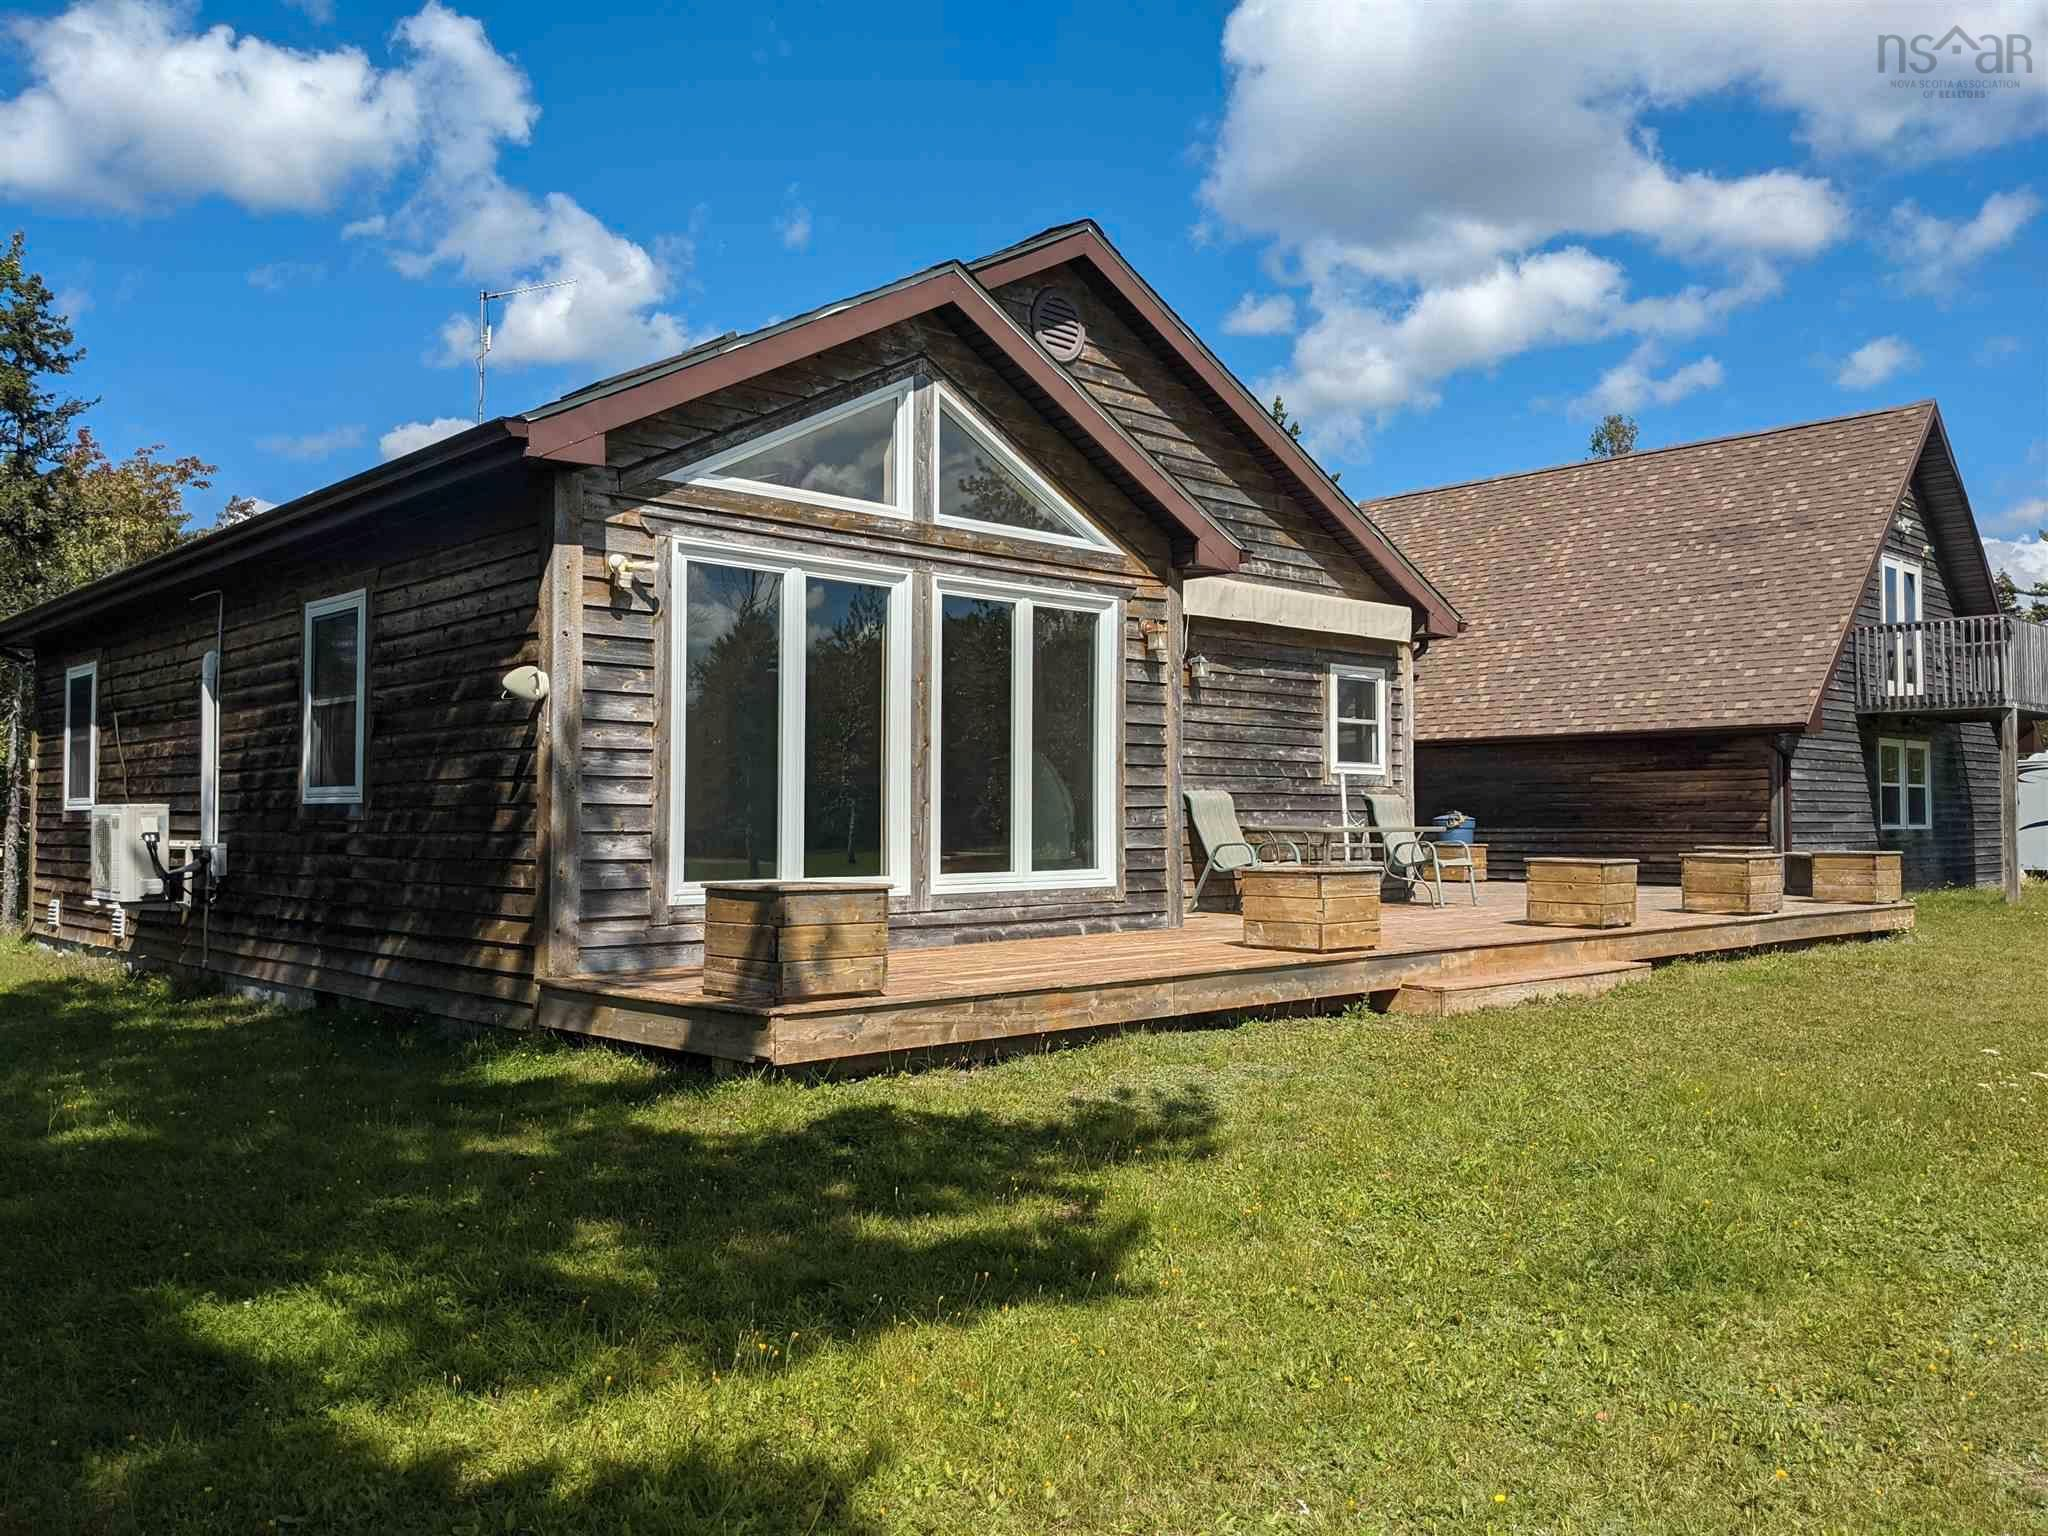 Main Photo: 1456 North River Road in Aylesford: 404-Kings County Residential for sale (Annapolis Valley)  : MLS®# 202123553